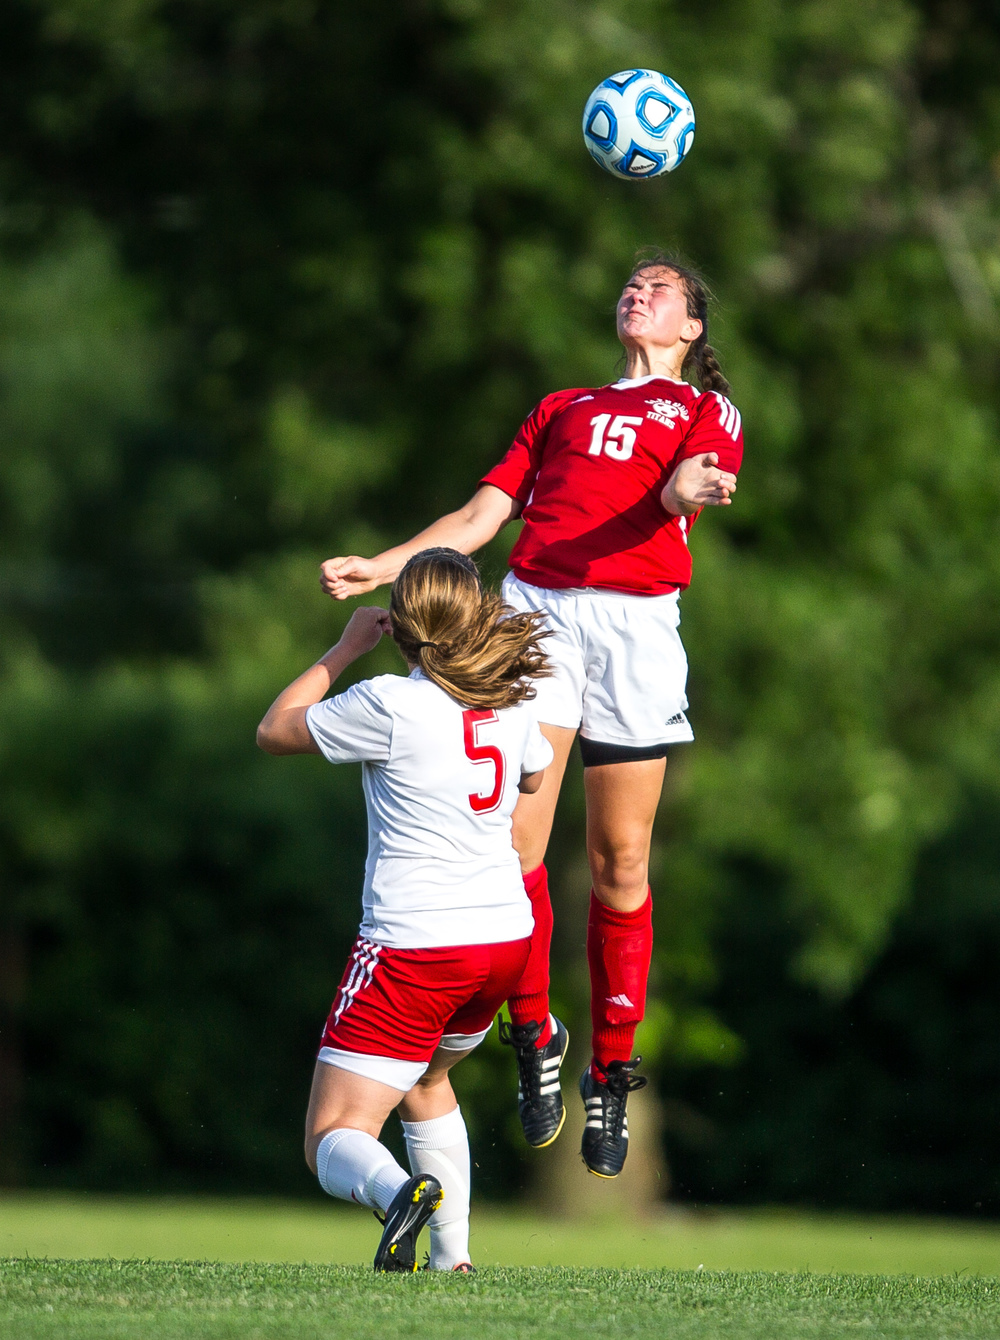 Glenwood's Alie Smith (15) wins a header against Metamora's Brittany Johnson (5) in the first half during the Class 2A Springfield Supersectional at Kiwanis Stadium, Tuesday, June 2, 2015, in Springfield, Ill. Justin L. Fowler/The State Journal-Register